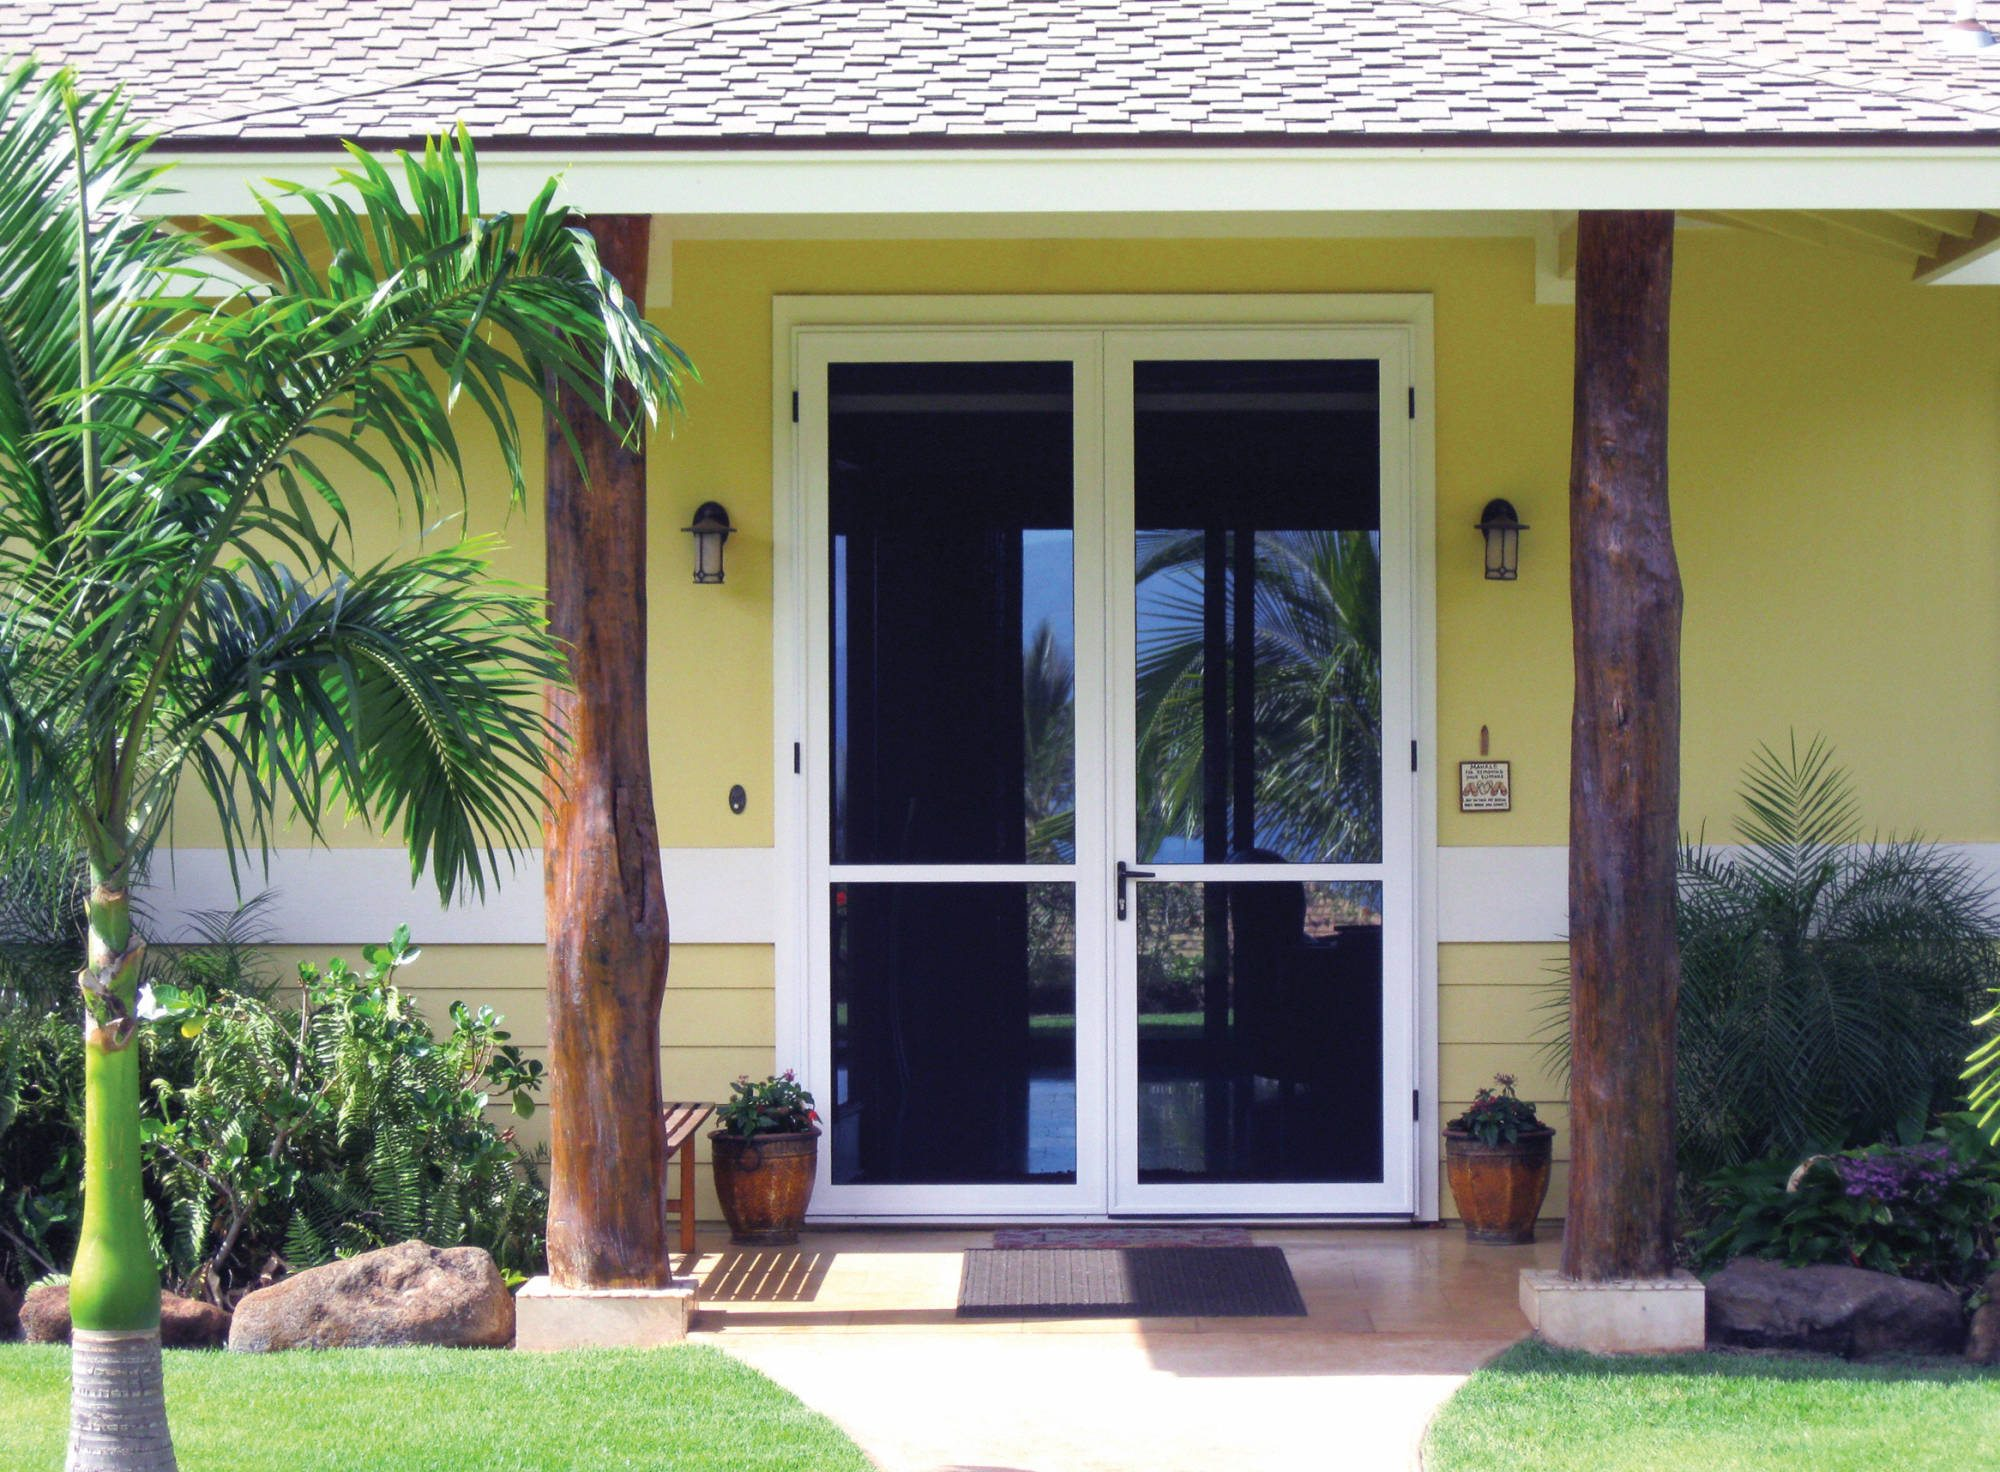 Mind French Doors Review French Doors Lowes Retractable Screen Door Cr Laurence Security Screen French Doors Security Screens Openings Screen Door houzz 01 Screen Door For French Doors